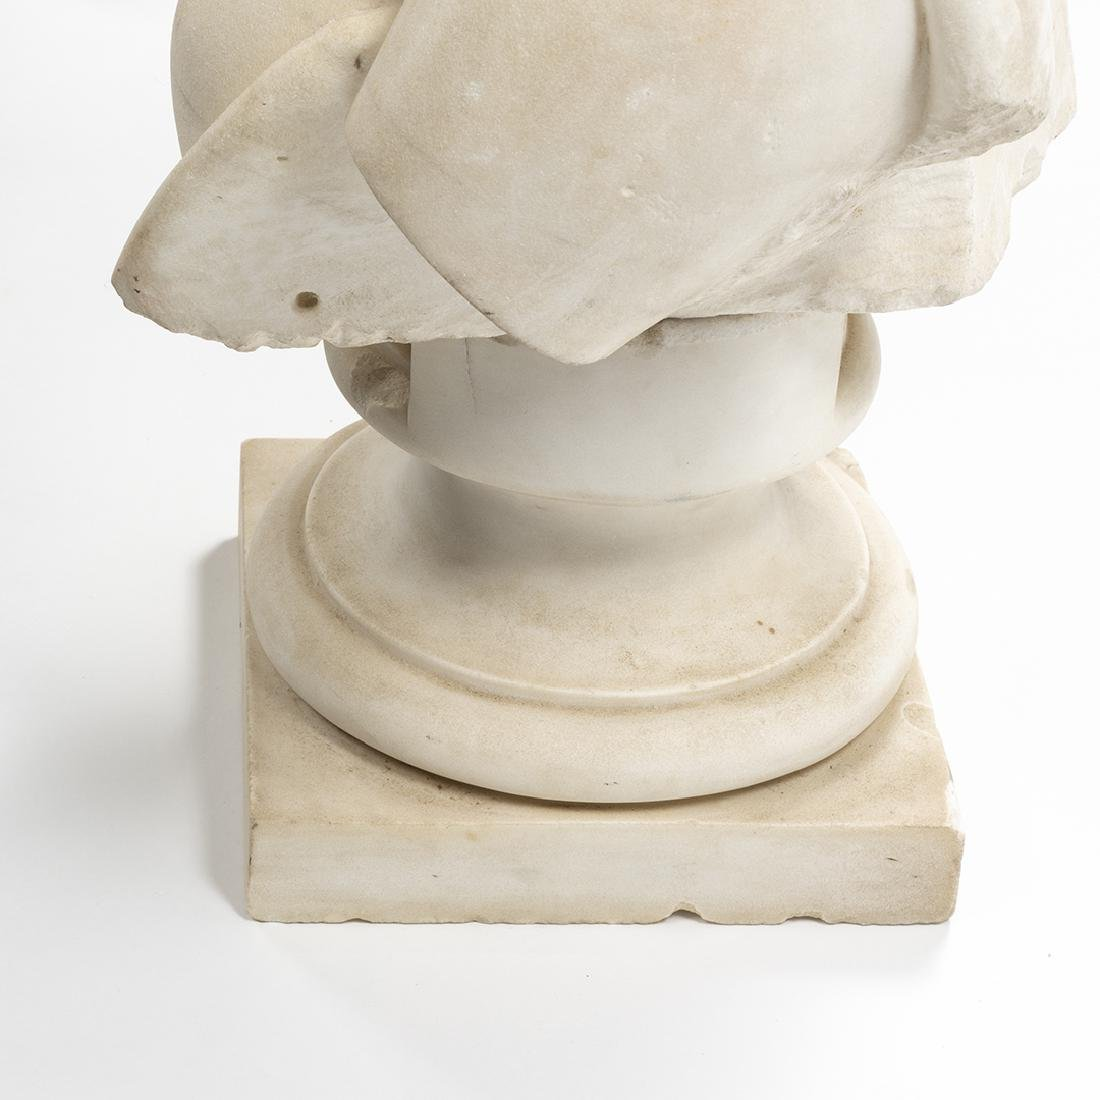 Classical Marble Sculpture by Chiurazzi - 6